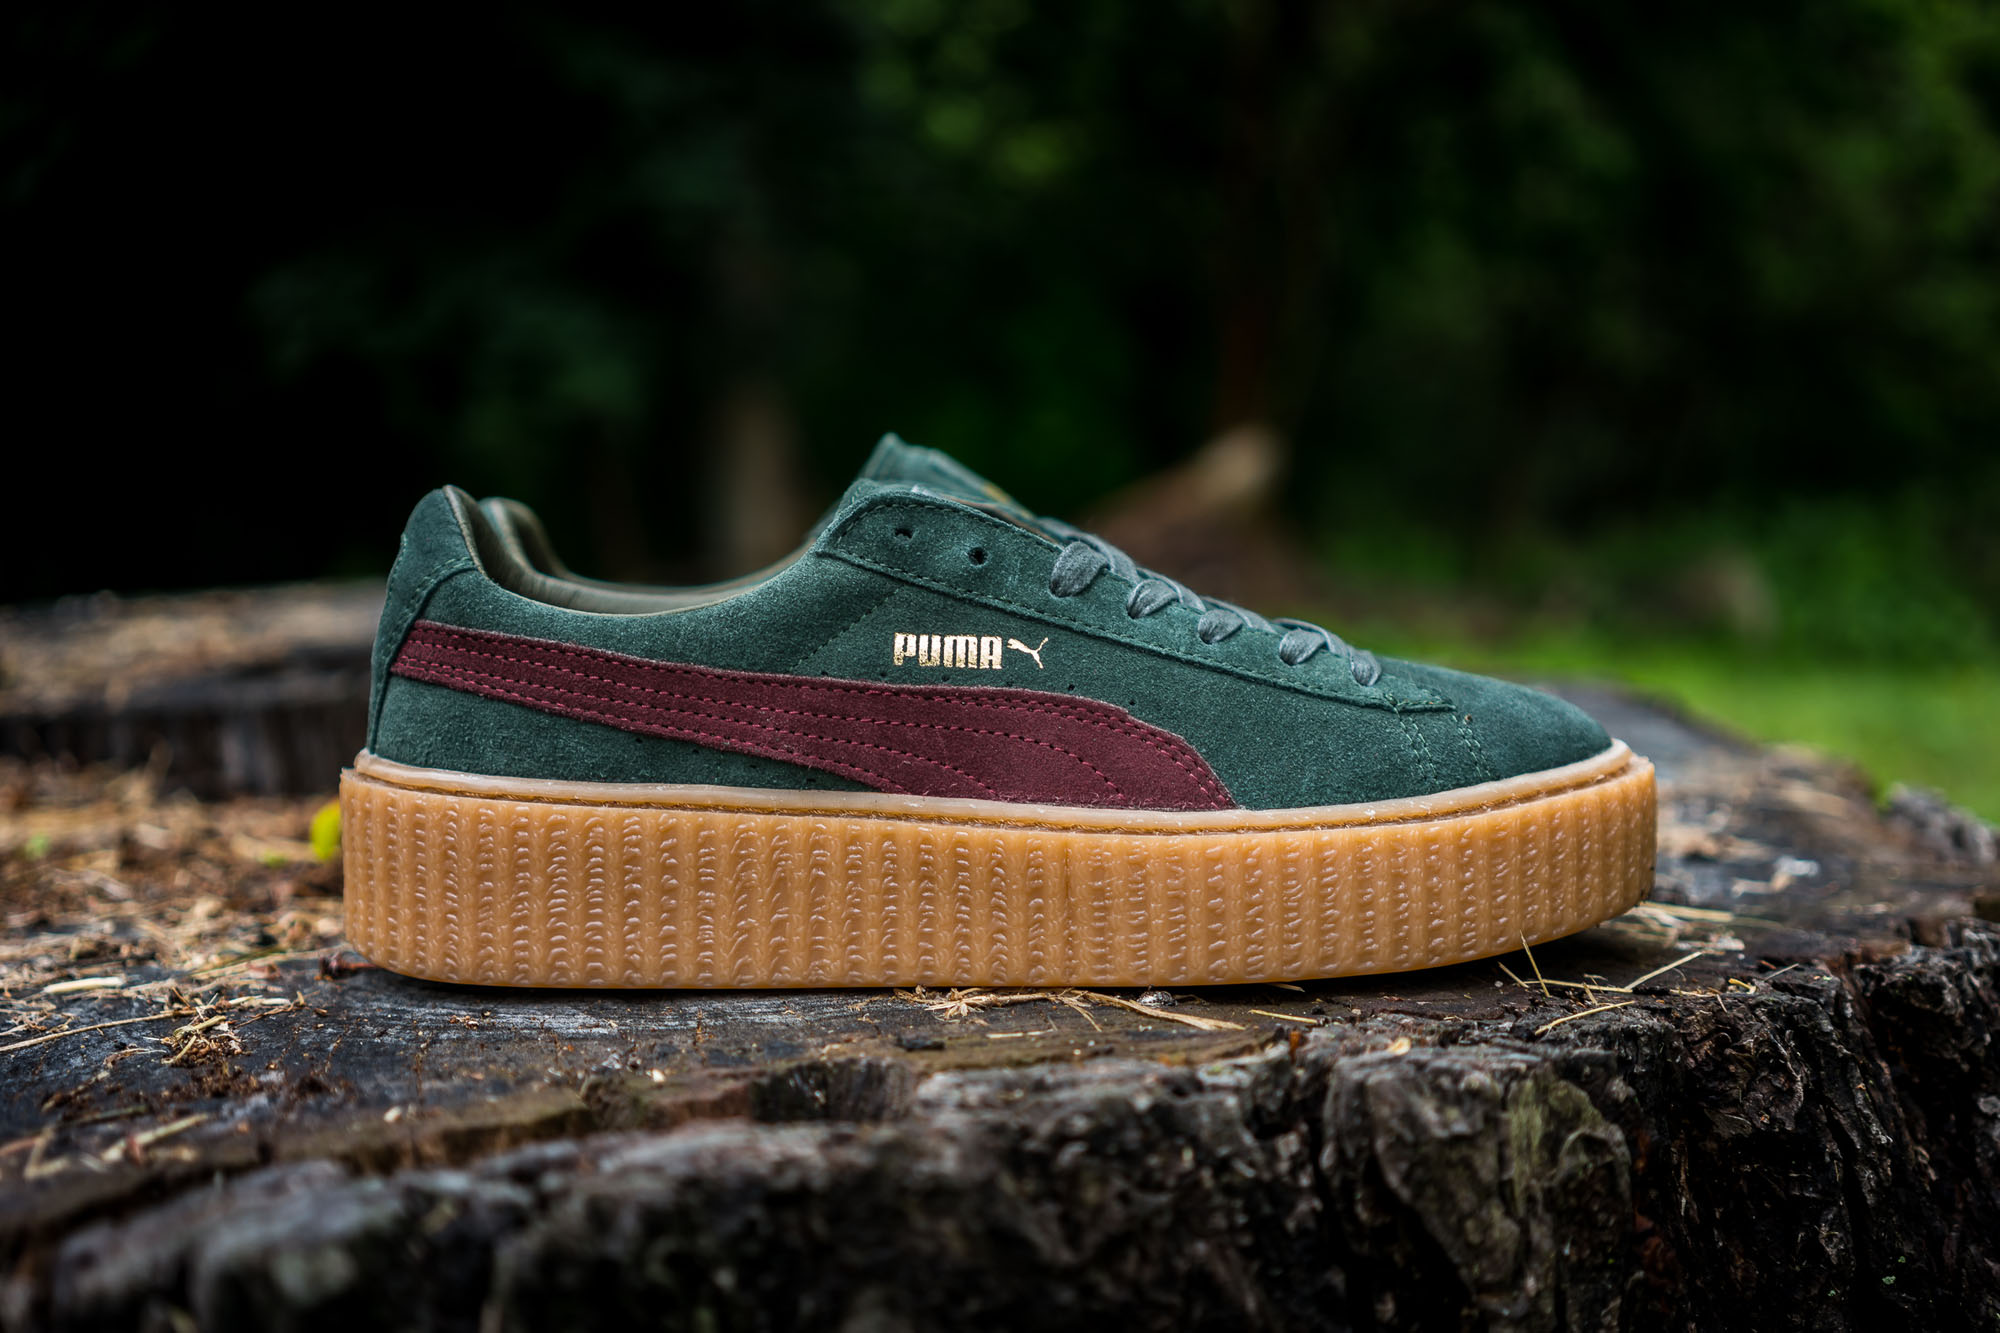 rihanna x puma fenty creeper may colorways packer shoes. Black Bedroom Furniture Sets. Home Design Ideas